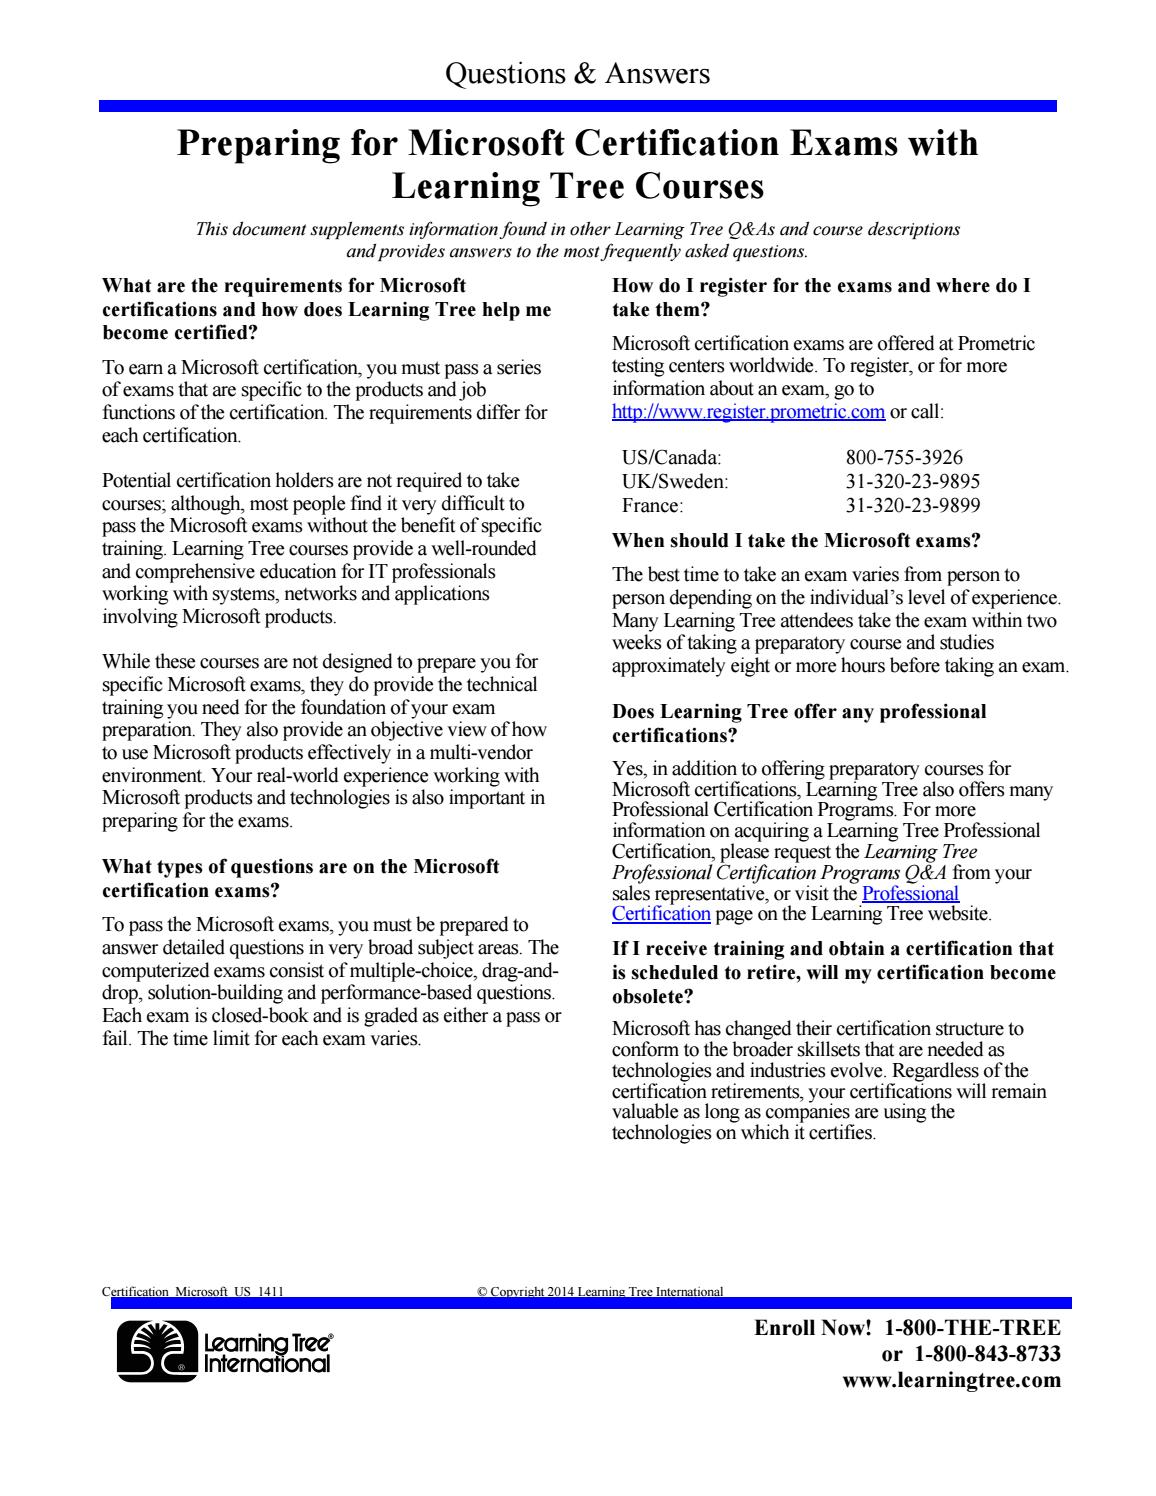 Microsoft Certification Exams Qa By Learningtree International Issuu